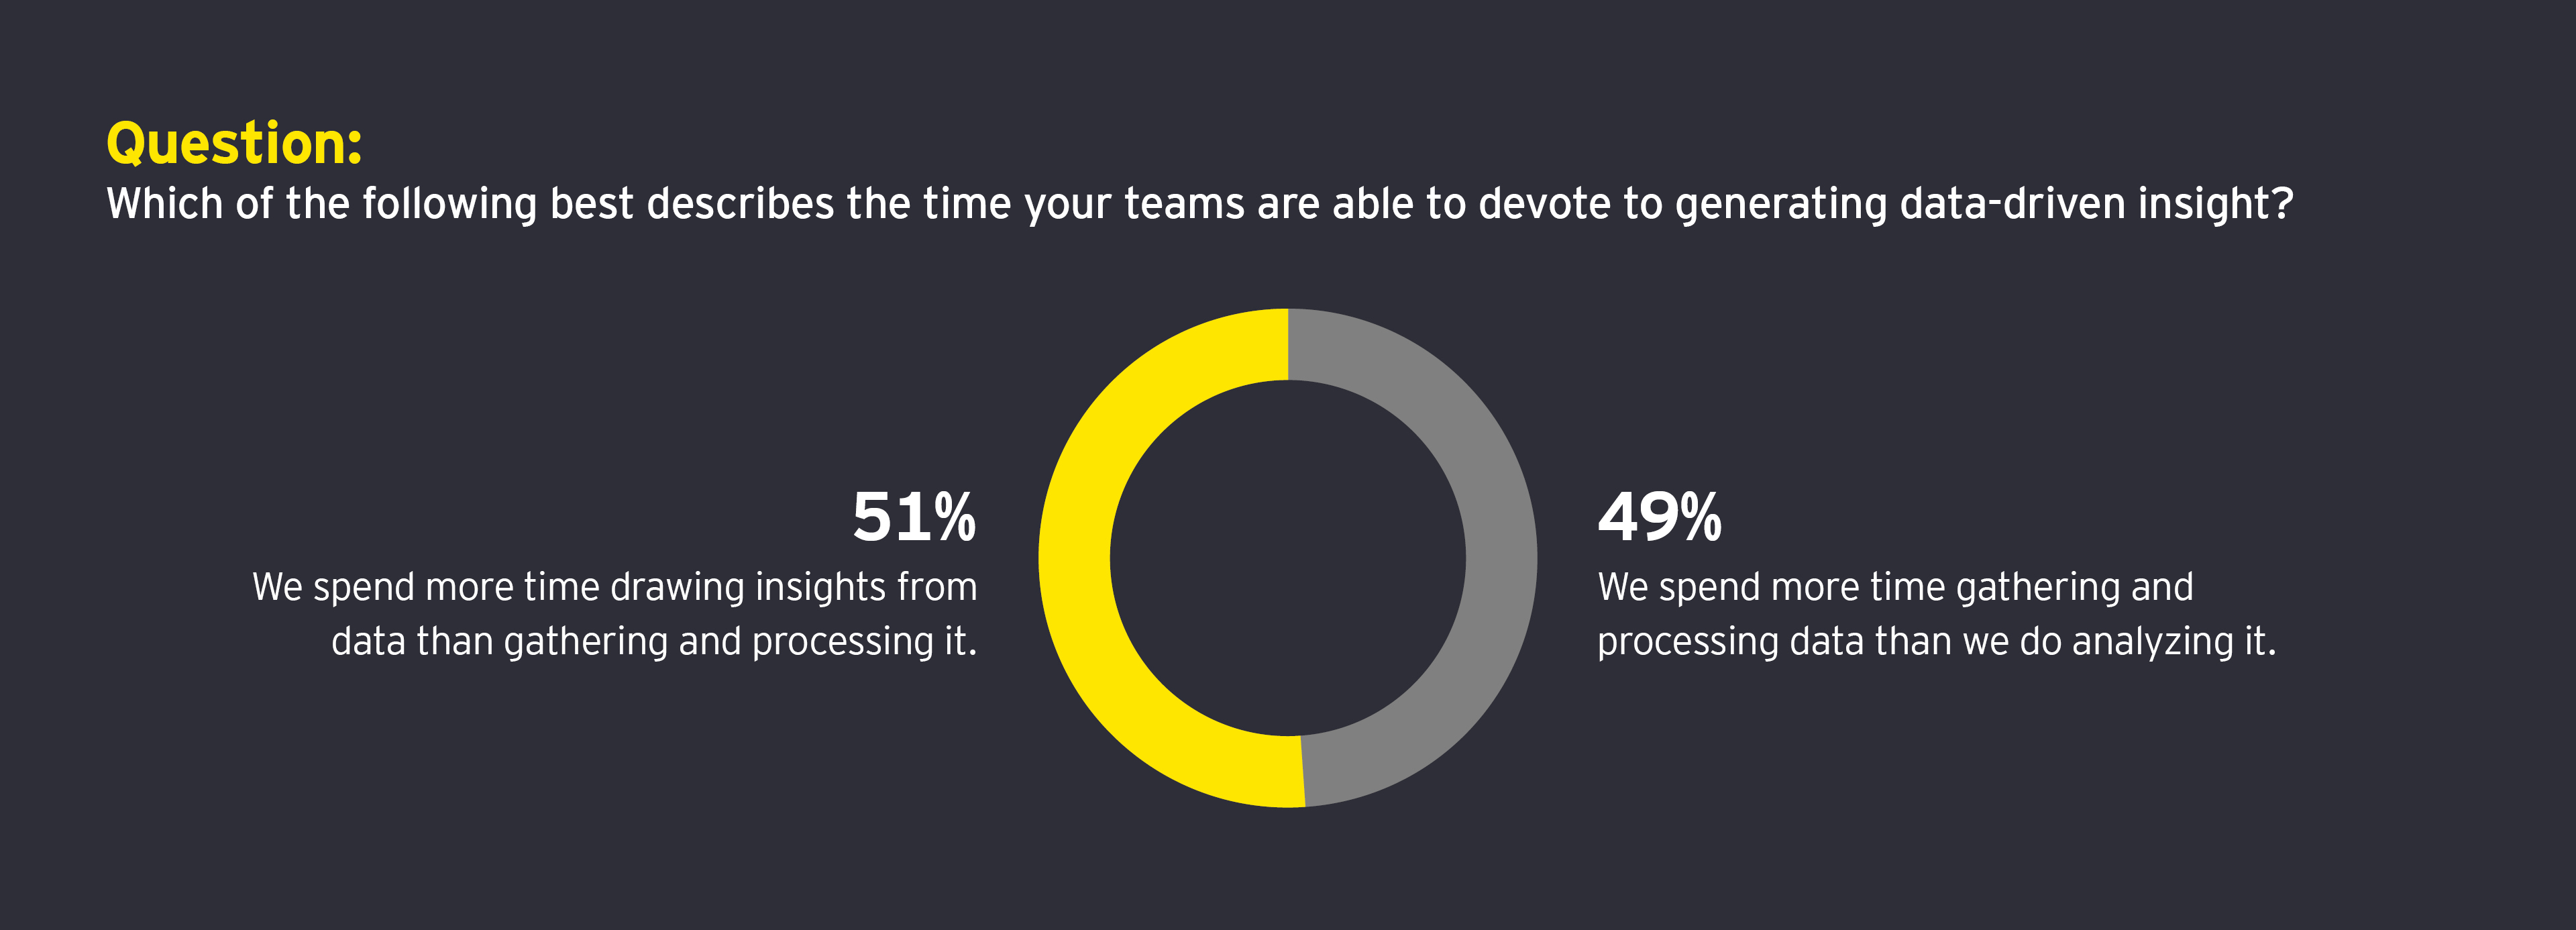 Question: Which of the following best describes the time your teams are able to devote to generating data-driven insight?